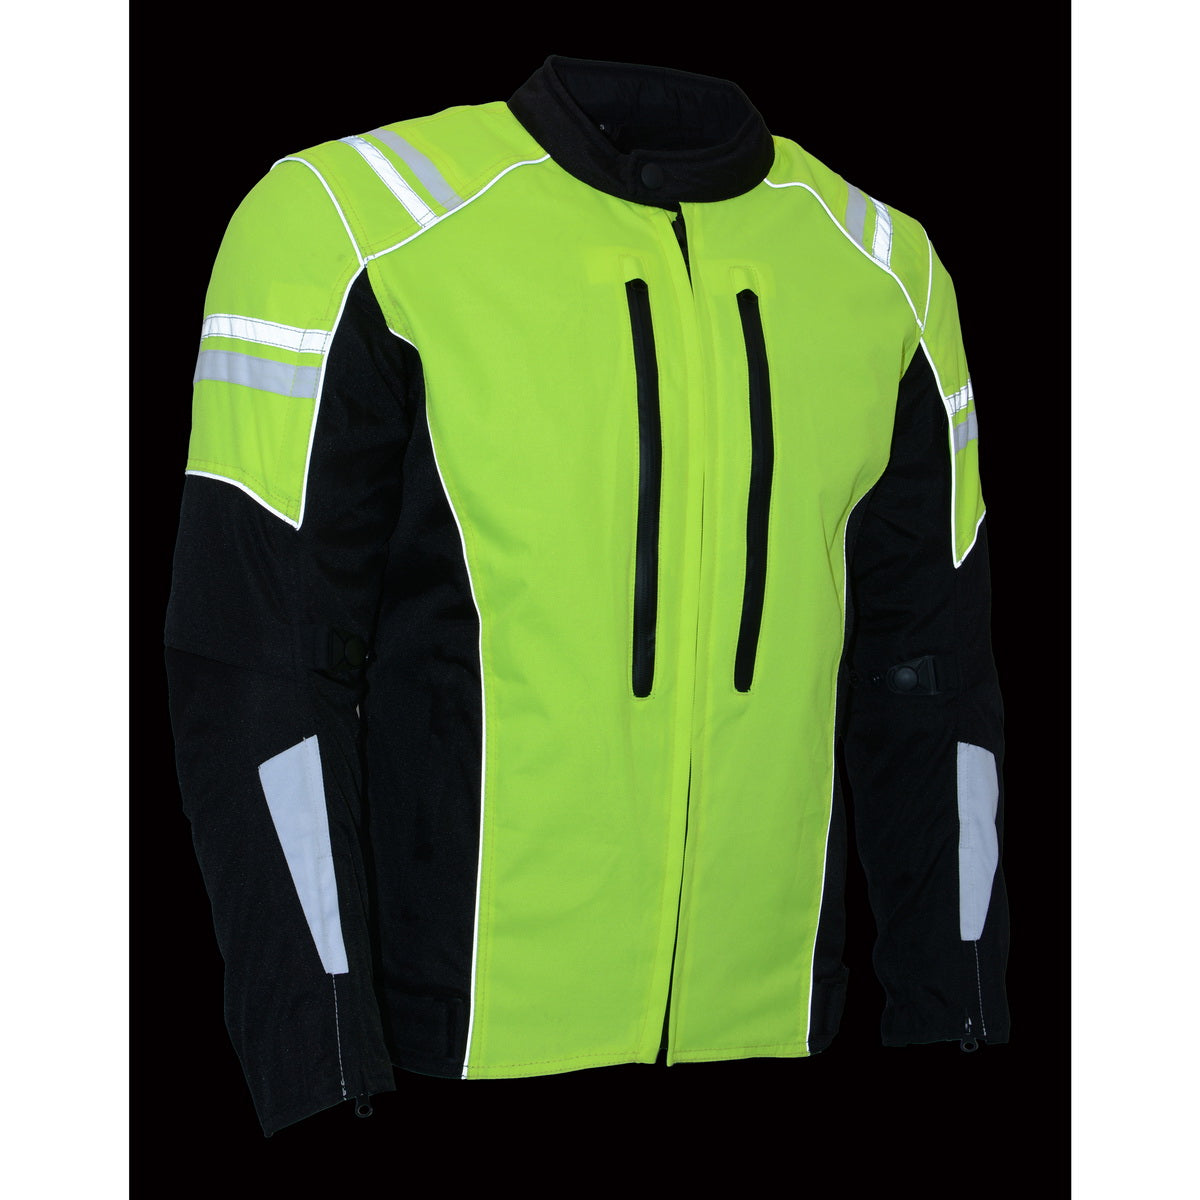 Black//Neon Green, X-Large Milwaukee Performance Mens Nylon//Mesh Combo Moto Jacket with Armor